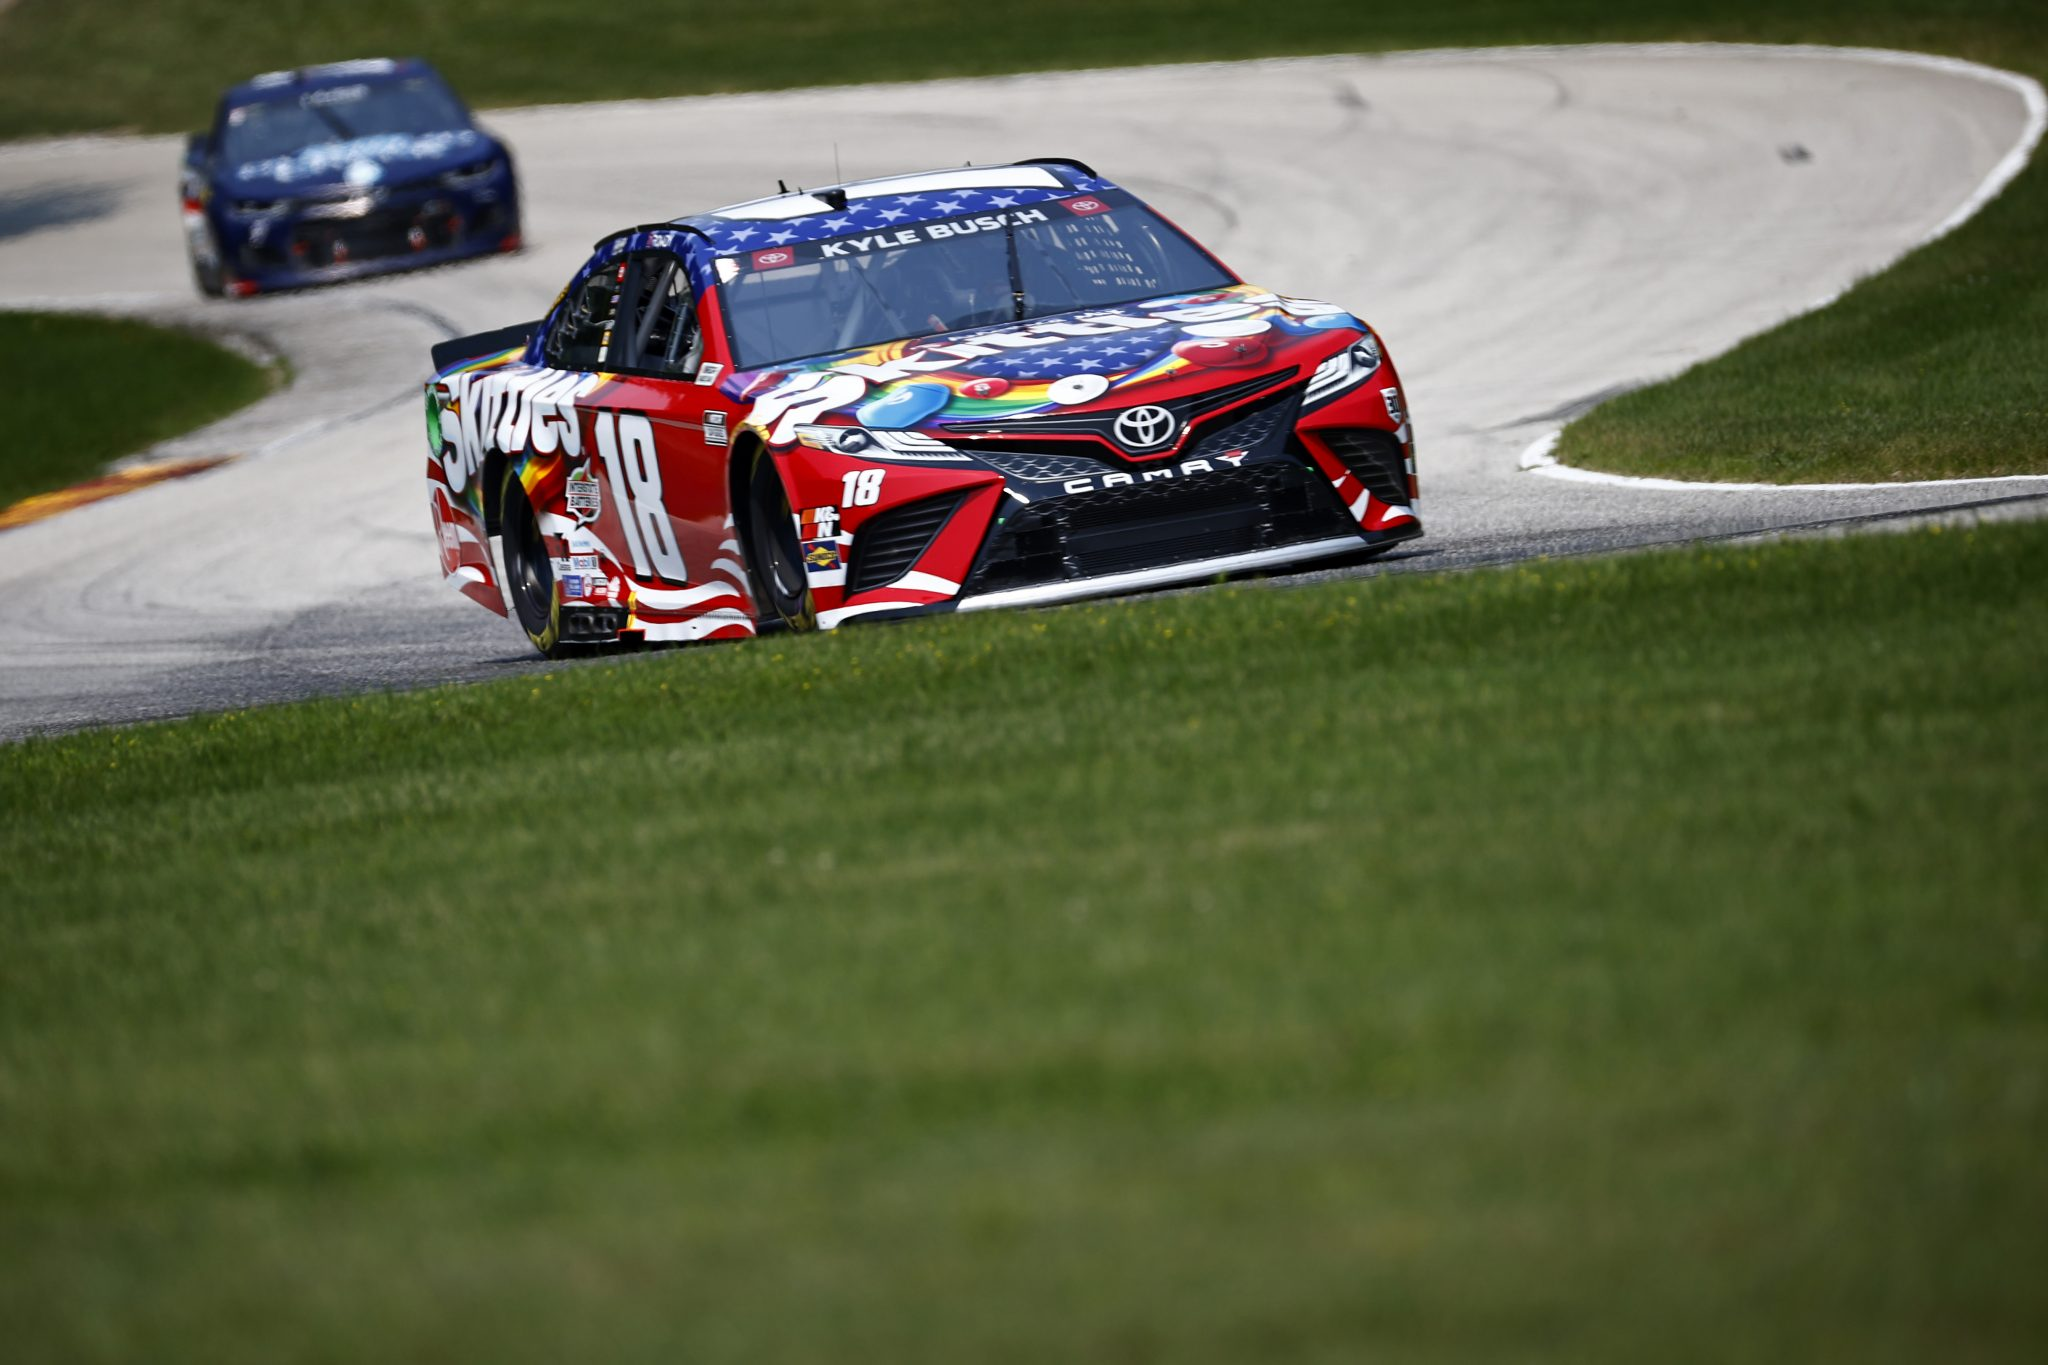 ELKHART LAKE, WISCONSIN - JULY 03: Kyle Busch, driver of the #18 Skittles Red White & Blue Toyota, during practice for the NASCAR Cup Series Jockey Made in America 250 Presented by Kwik Trip at Road America on July 03, 2021 in Elkhart Lake, Wisconsin. (Photo by Jared C. Tilton/Getty Images) | Getty Images